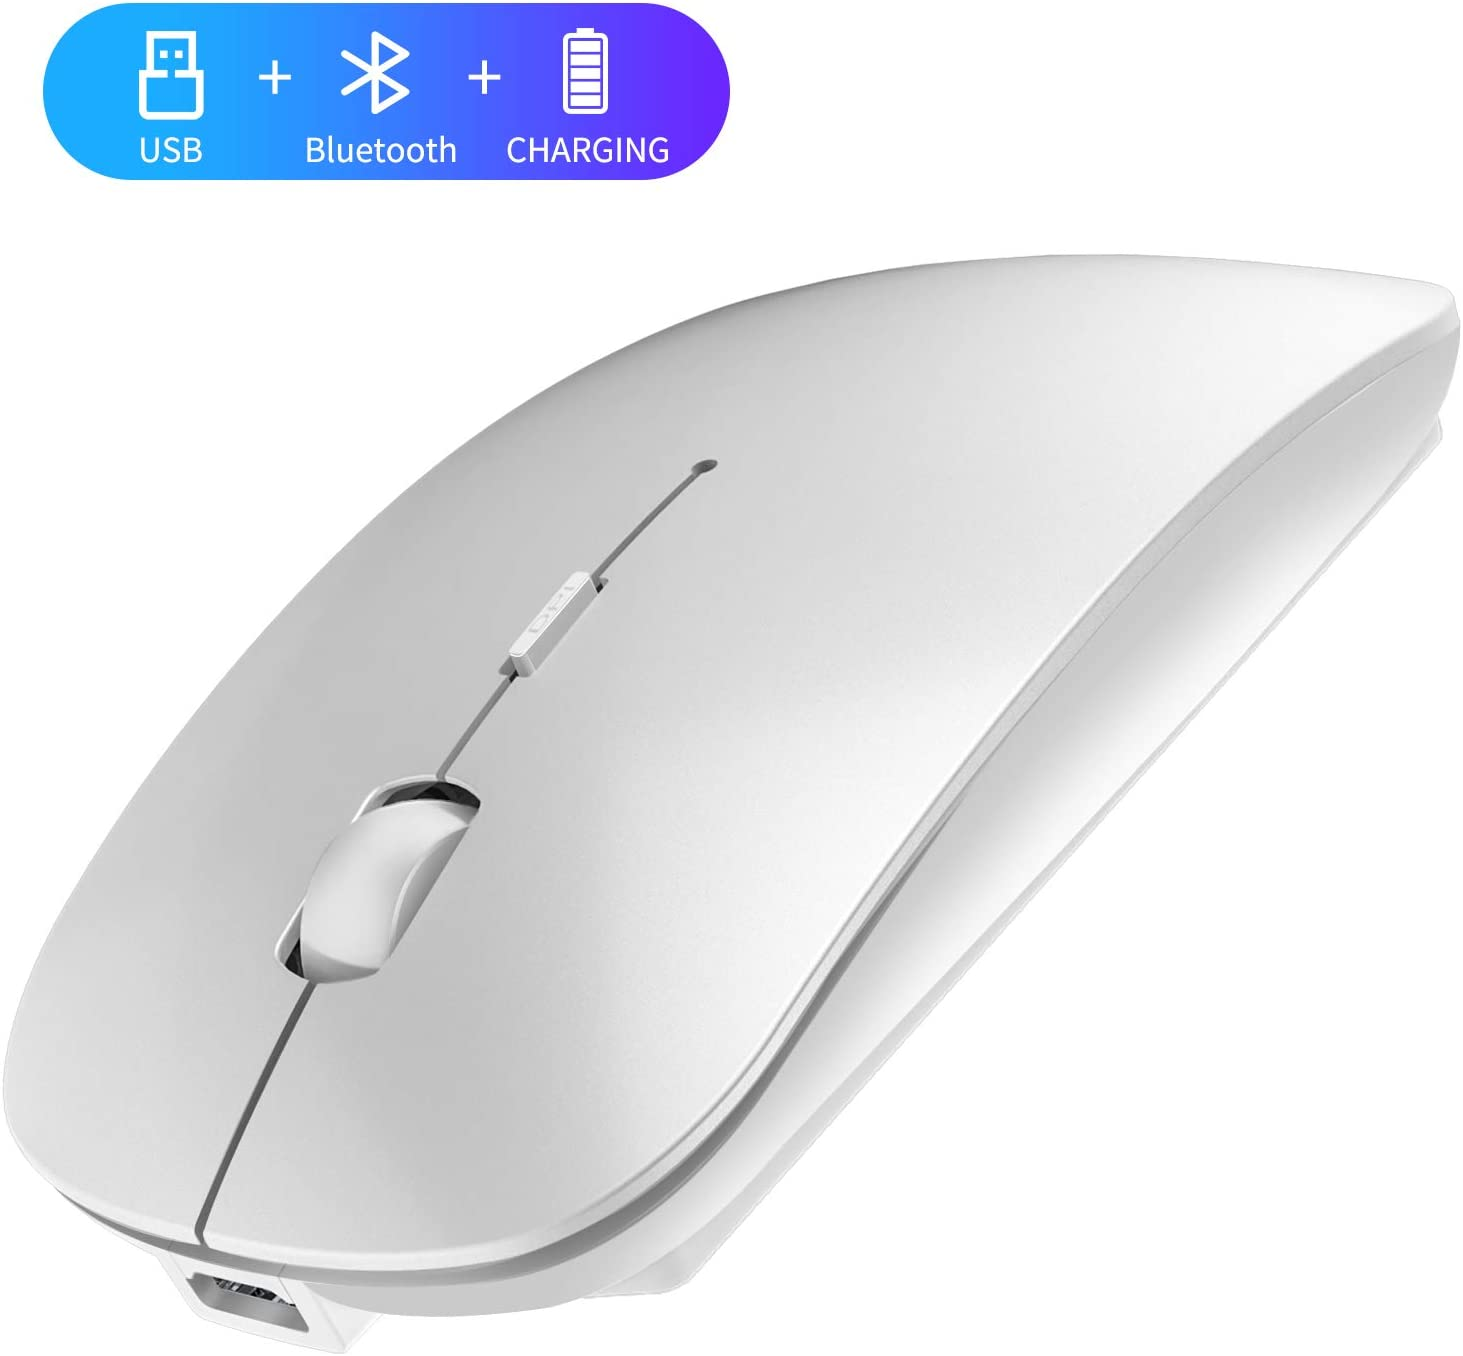 2.4GHz Wireless Bluetooth Mouse, 3 Adjustable DPI, Dual Mode Slim Rechargeable Wireless Mouse Silent USB Mice,Compatible for Laptop Windows Mac Android MAC PC Computer (Silver)